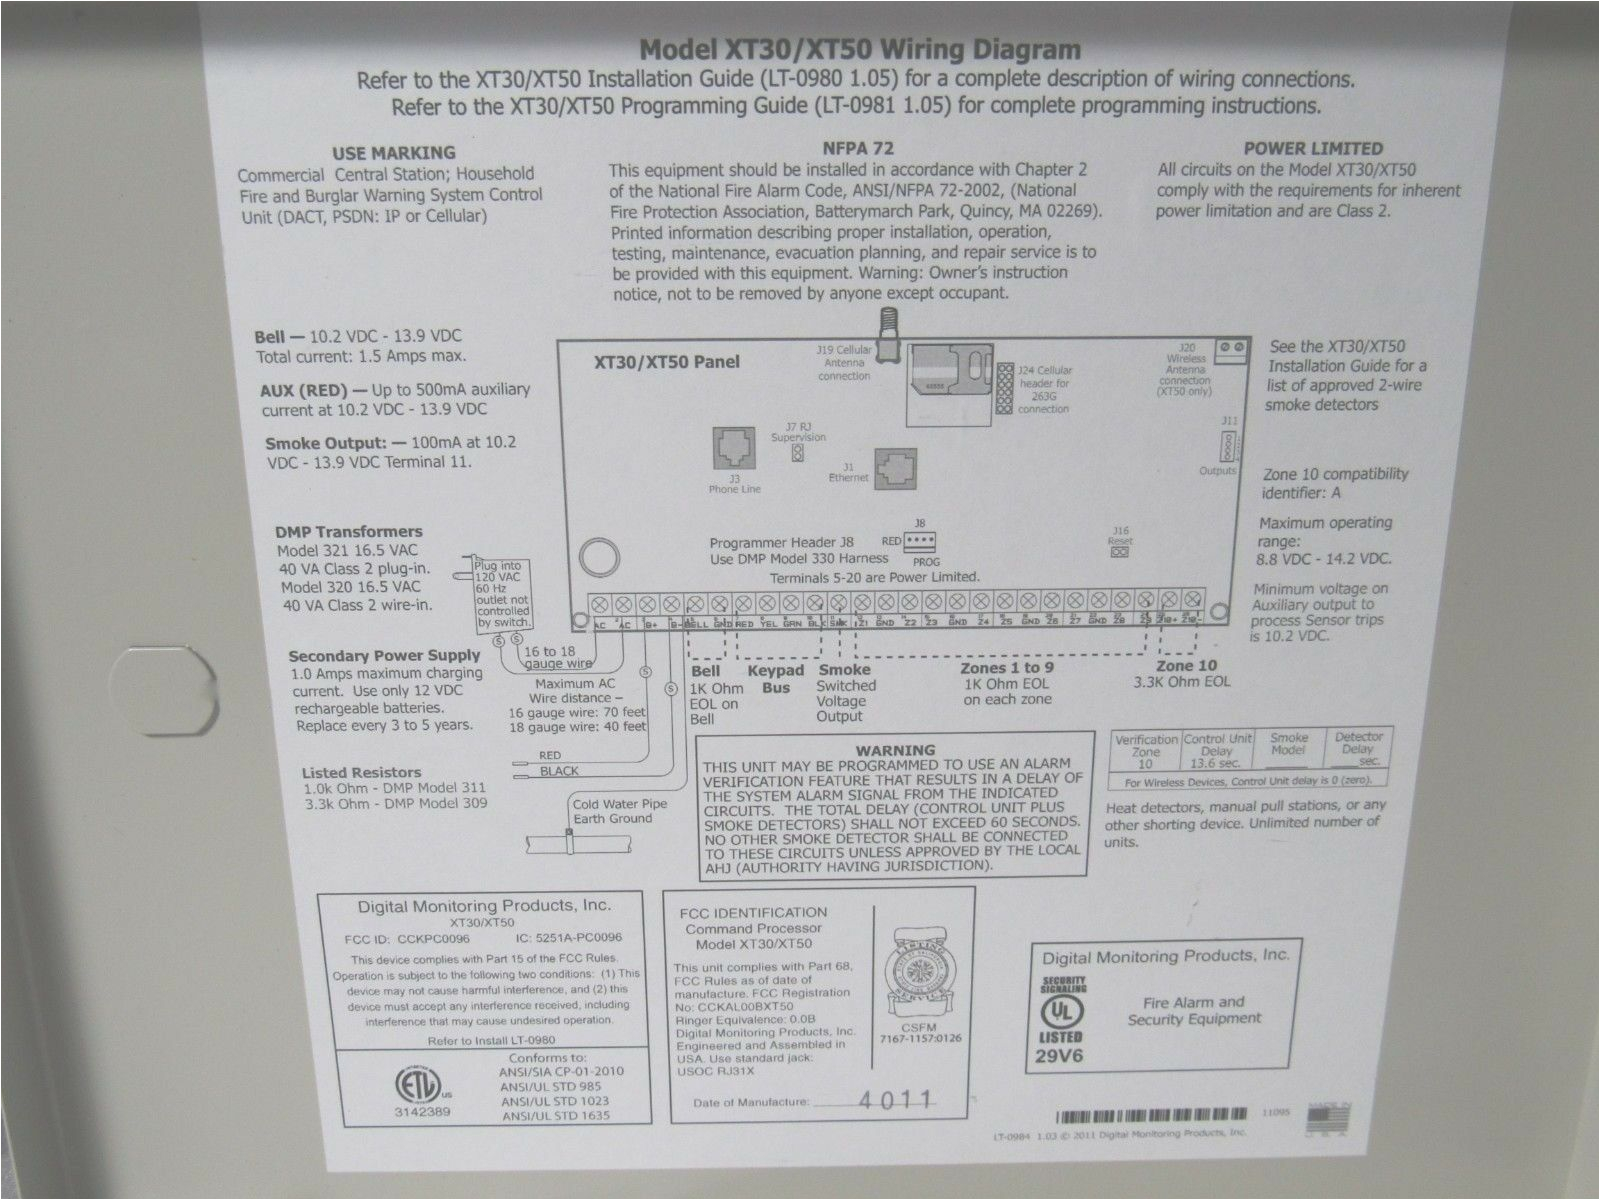 dmp xt50dns g panel with dialer and network communication options for sale online ebay